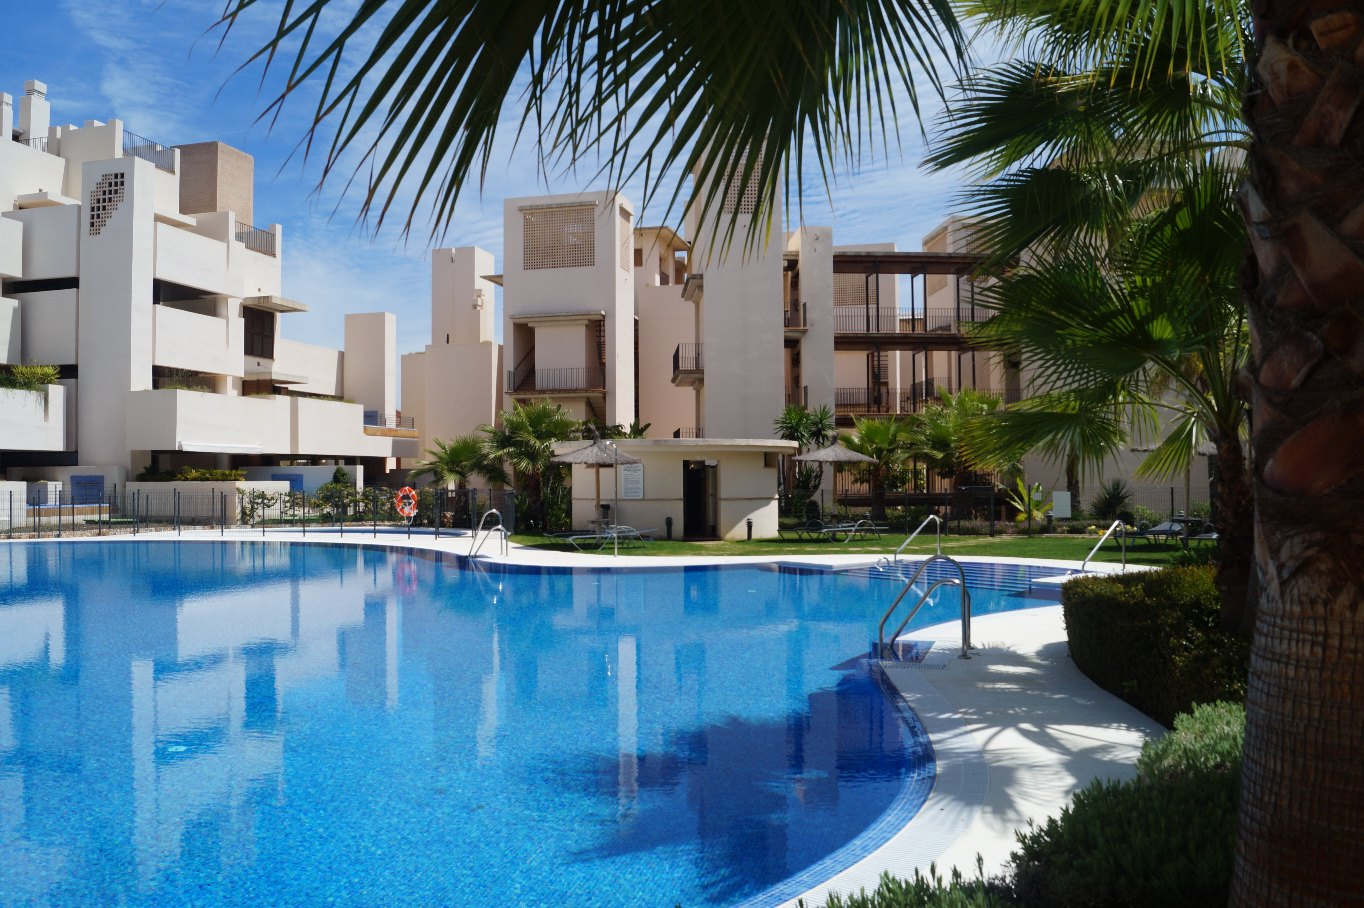 Modern luxury apartments on the beach, Estepona, Costa del Sol.